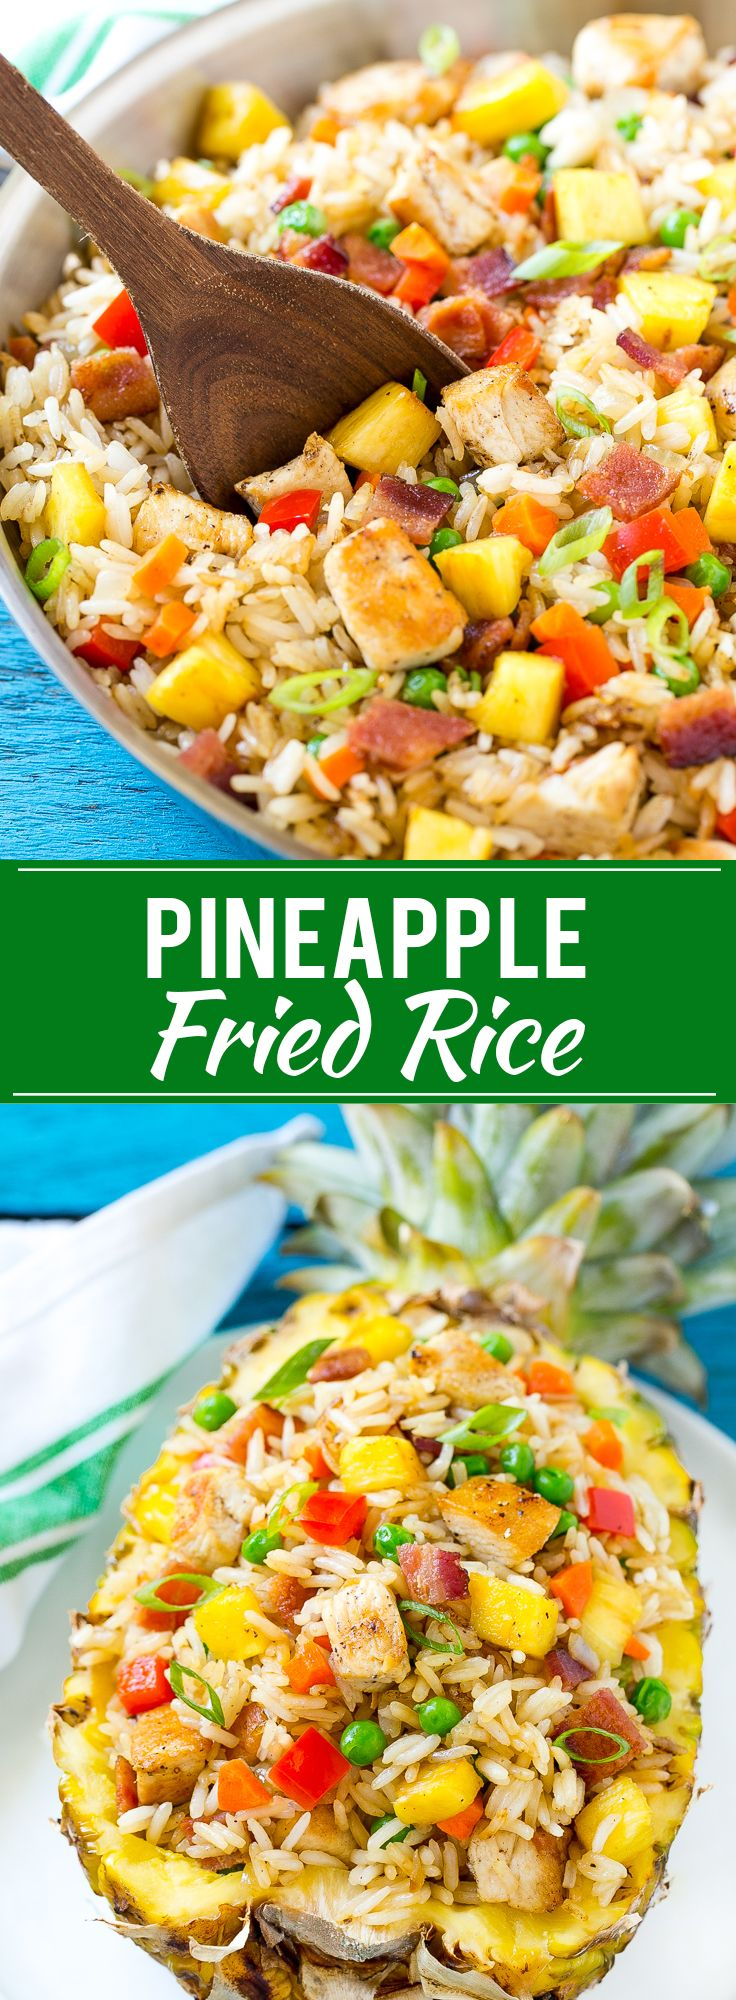 This recipe for pineapple fried rice is loaded with chicken, bacon, crunchy veggies and juicy pineapple. A simple and easy main course or side dish that's MUCH better than take out.